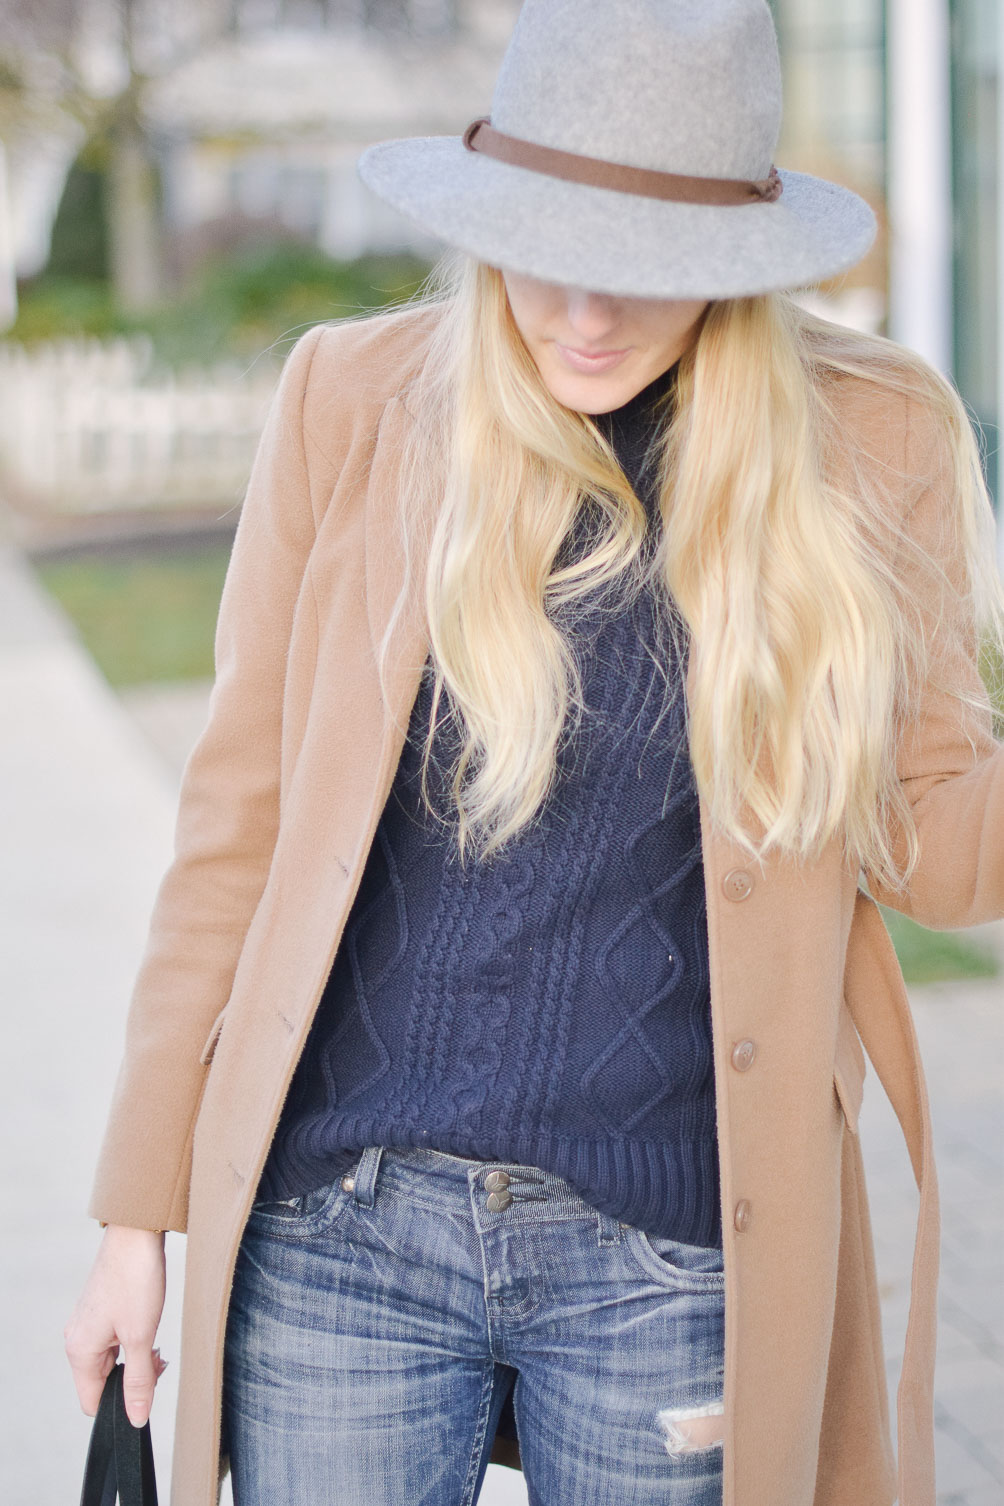 styling a grey felt fedora with camel winter coat and cable knit sweater